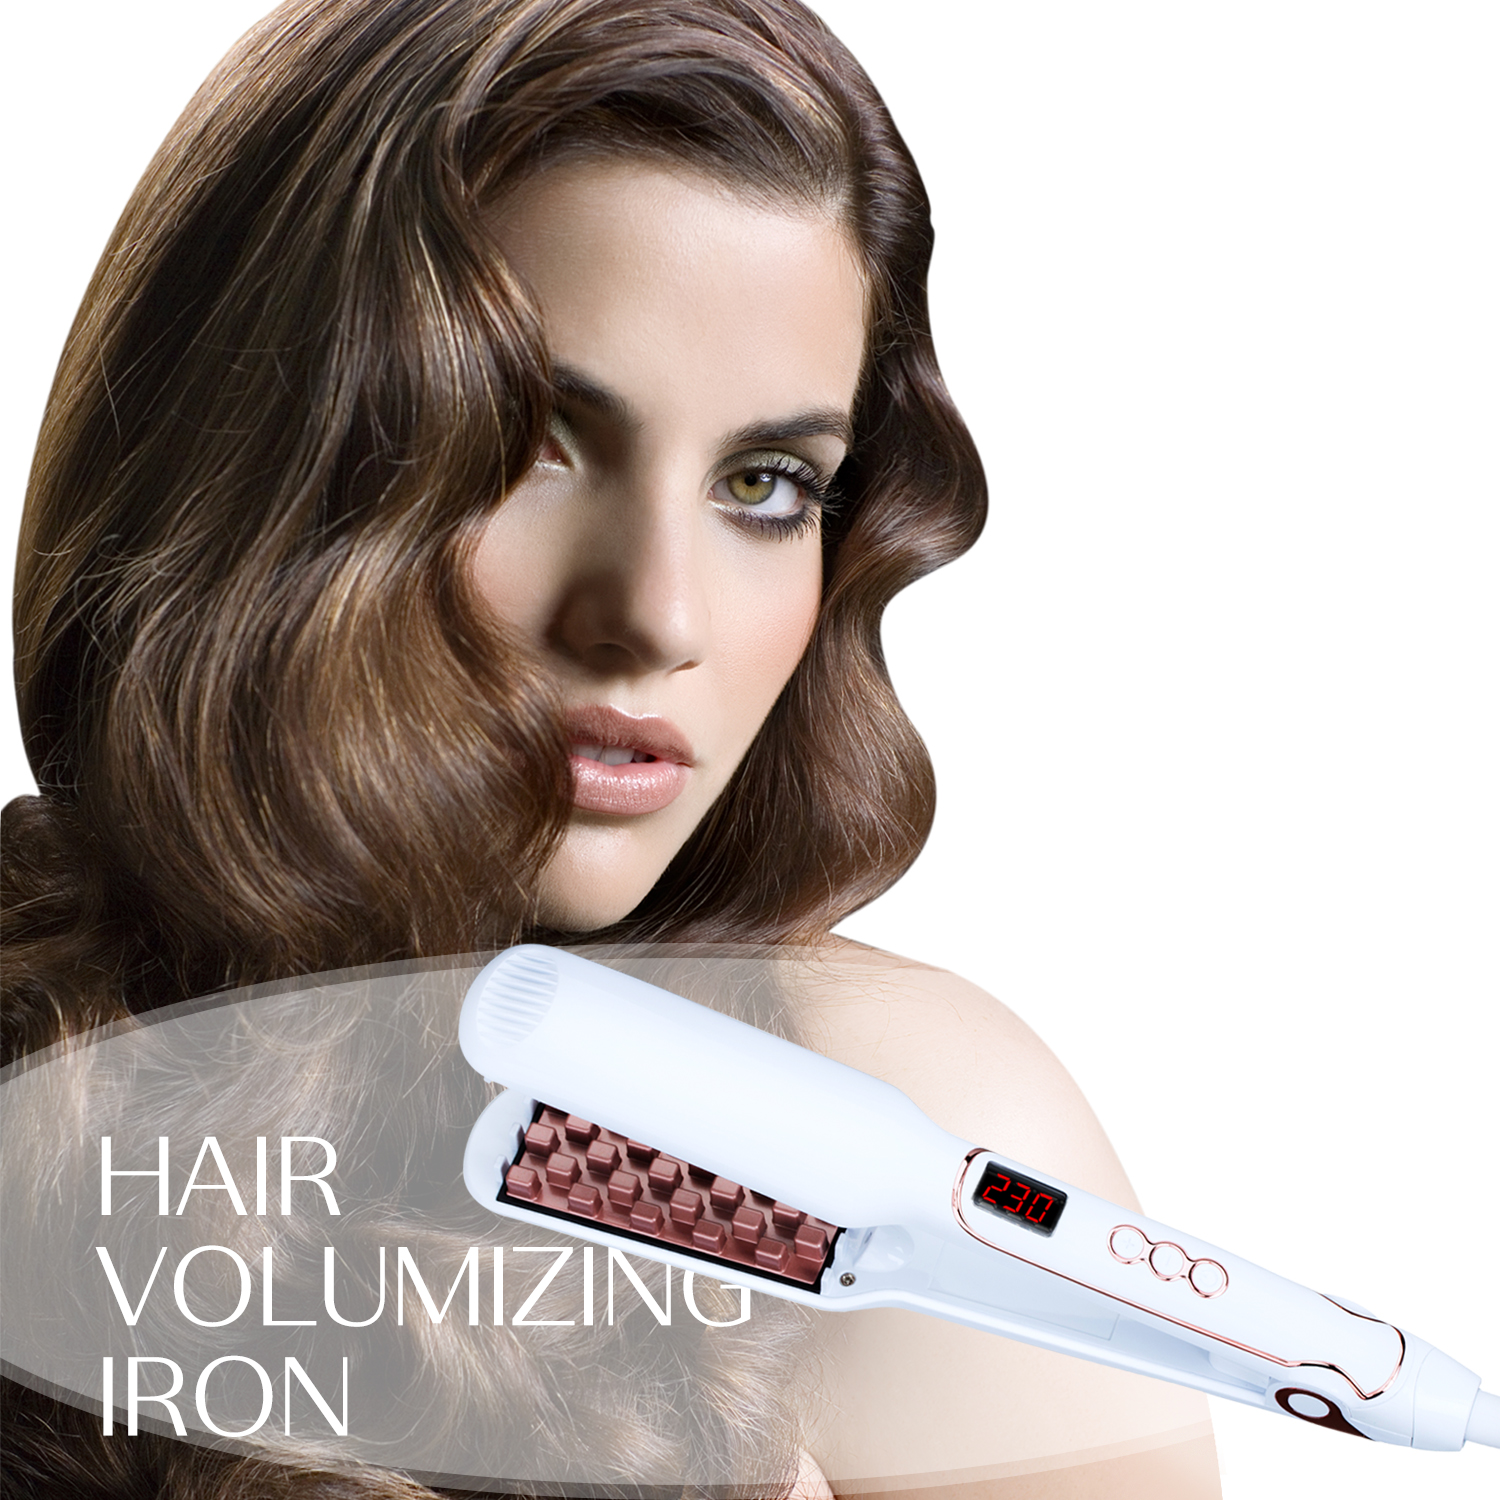 Fluffy Hair Straightener Hair Volumizing Iron Flat Iron Digital Flat Iron With LCD Display Electric Fluffy Styling Hair Lifter